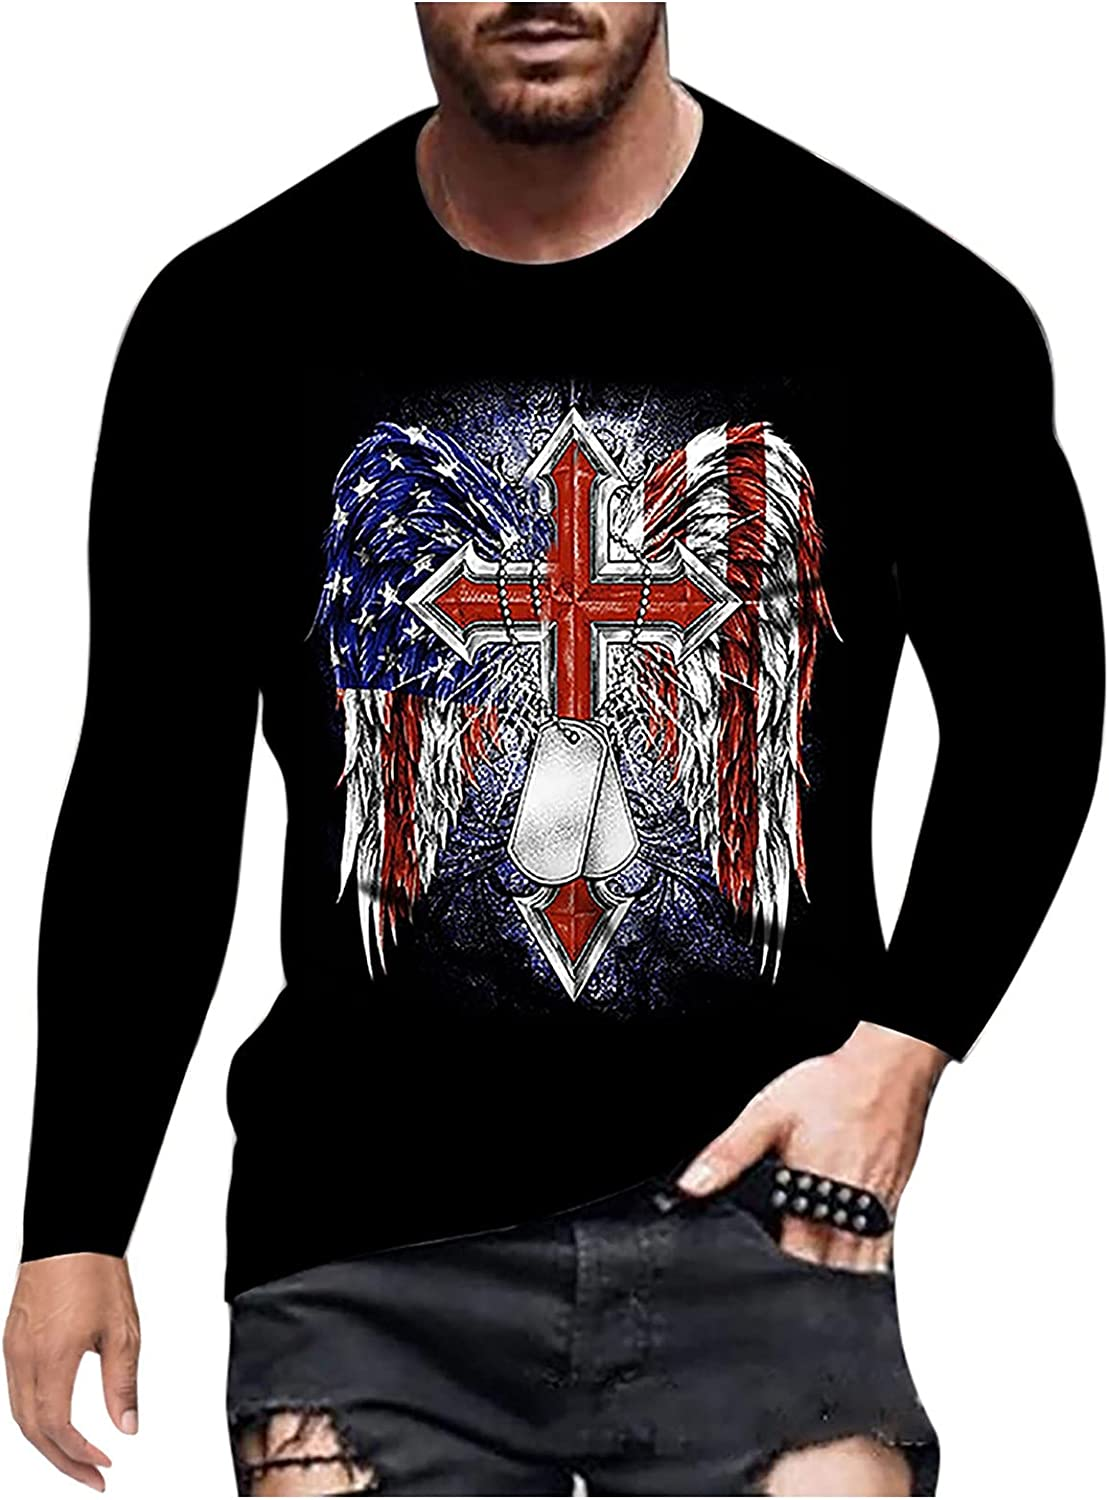 Men's Quick Dry Sweat-Wicking Casual Soft Long Sleeve Fashion Henley Shirt, Classic Fit T-Shirt for Workout